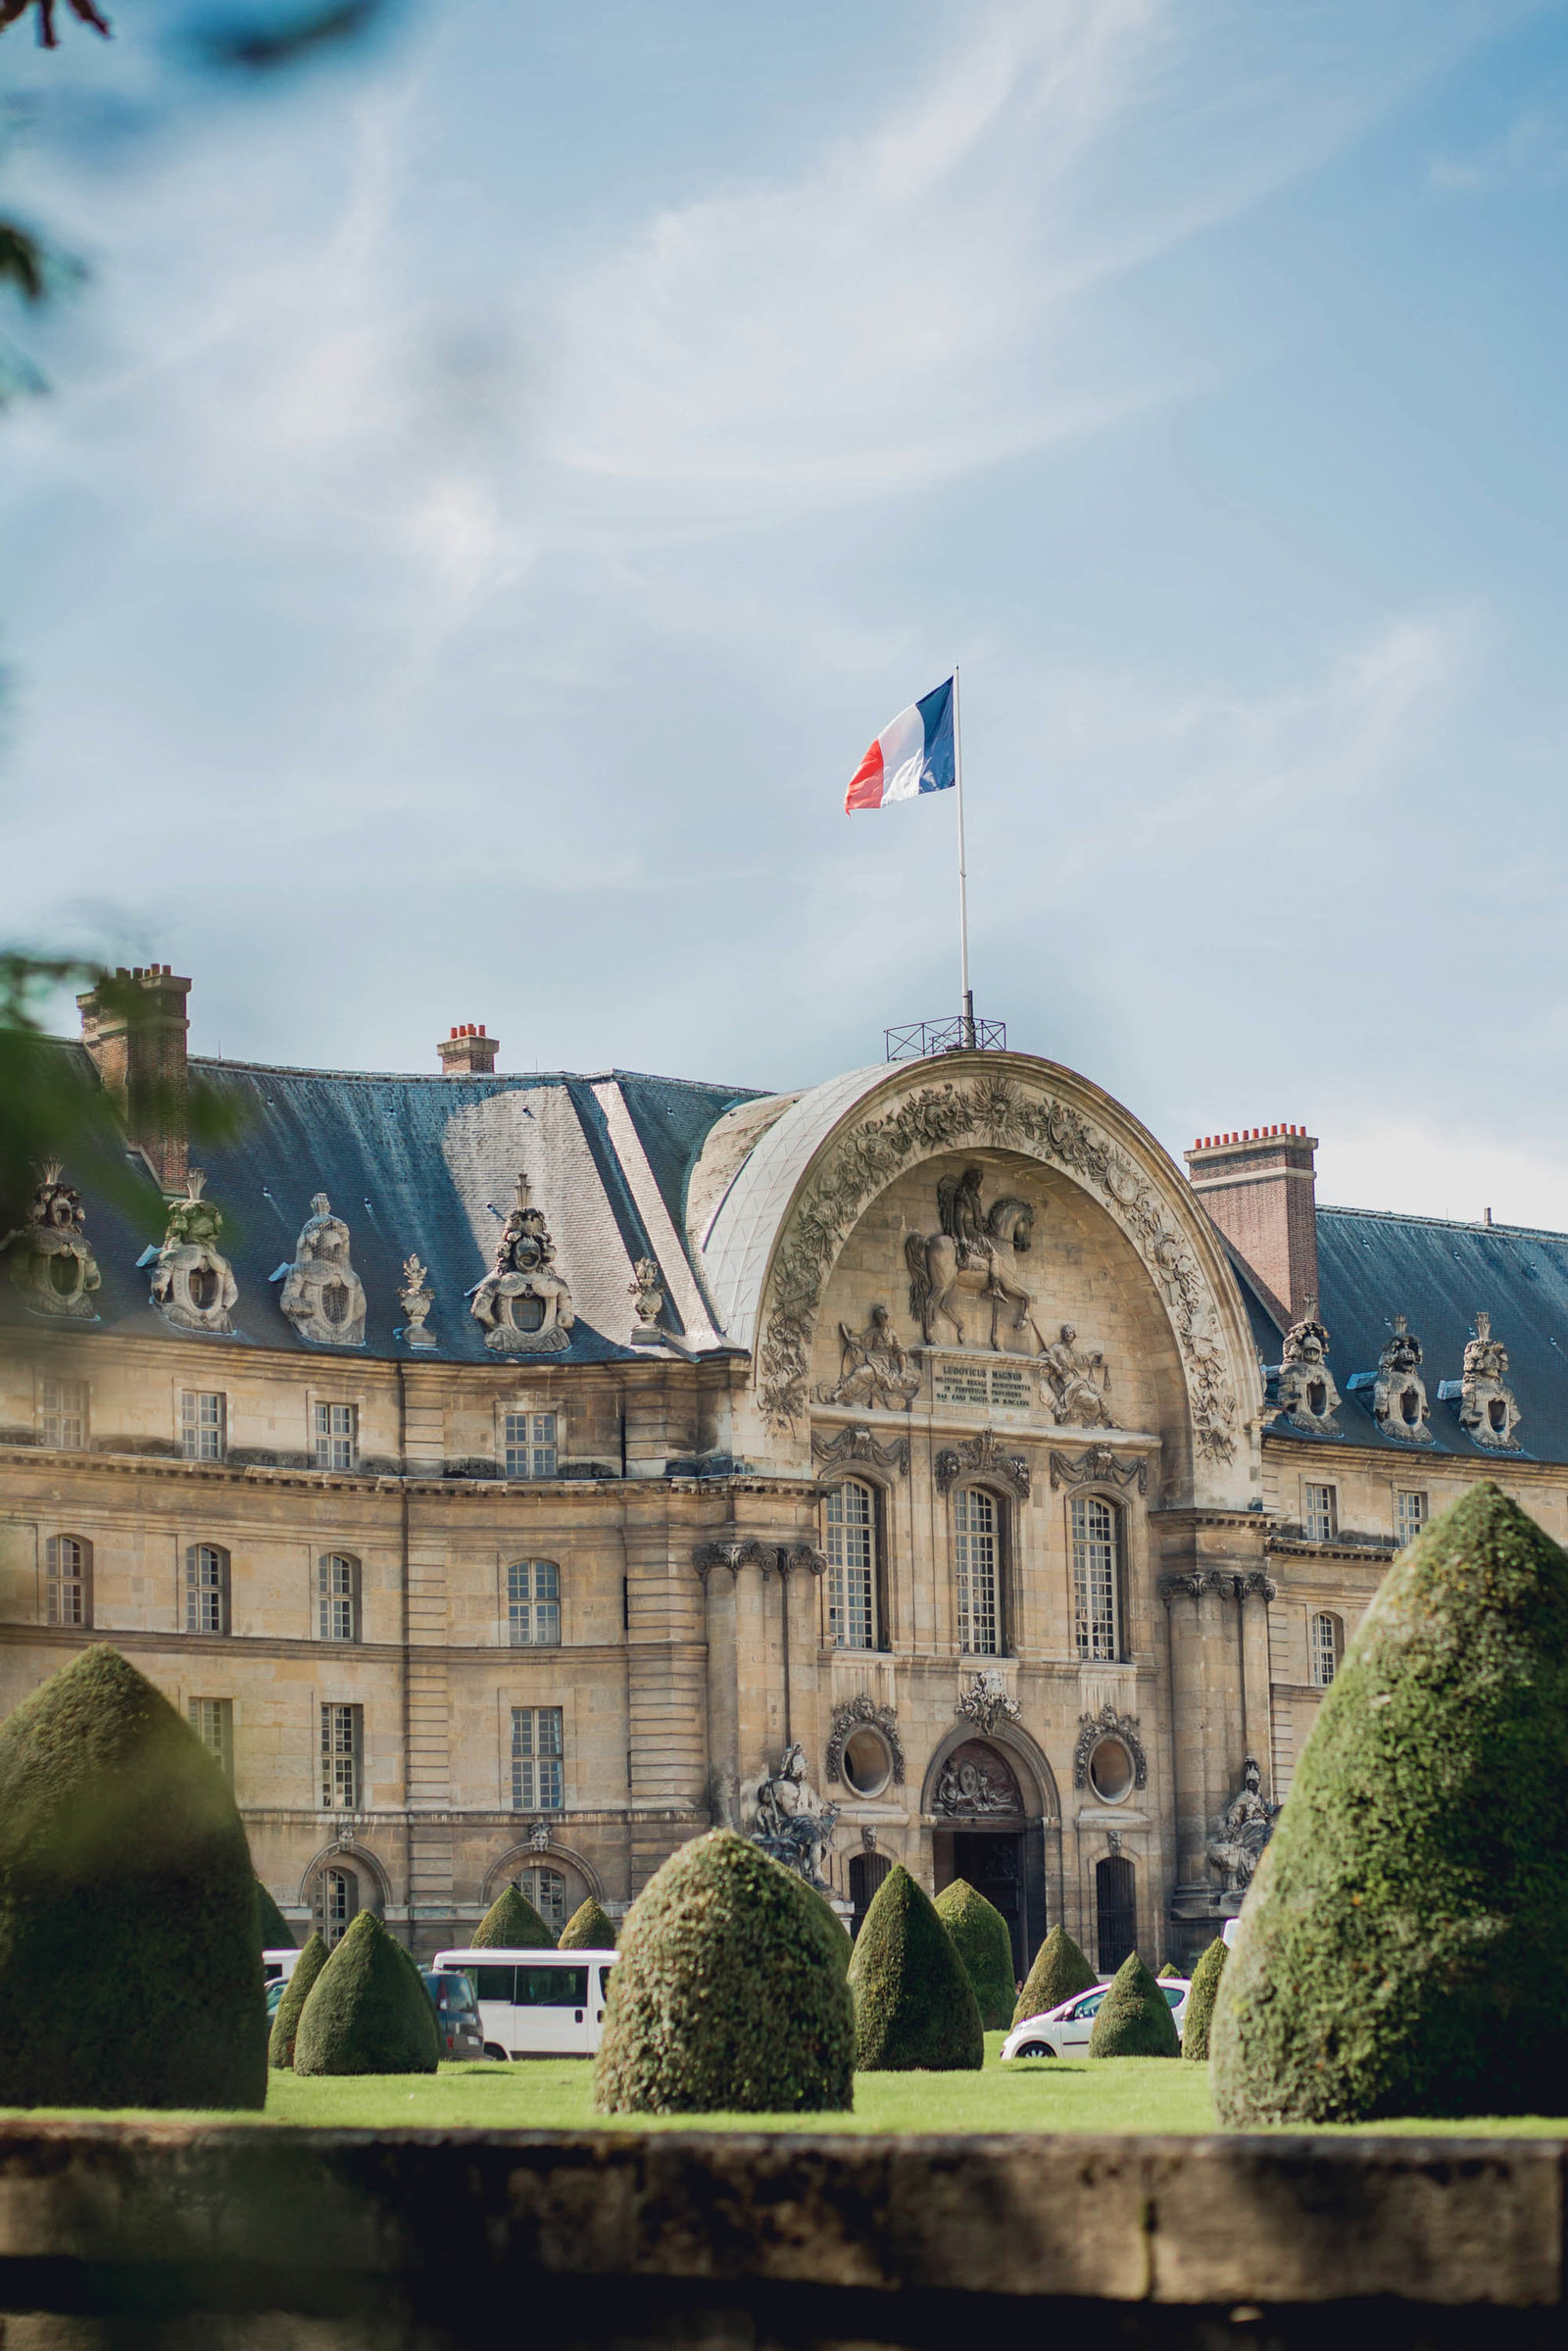 musee-armee-paris-france-travel-destination-wedding-kate-timbers-photography-1751